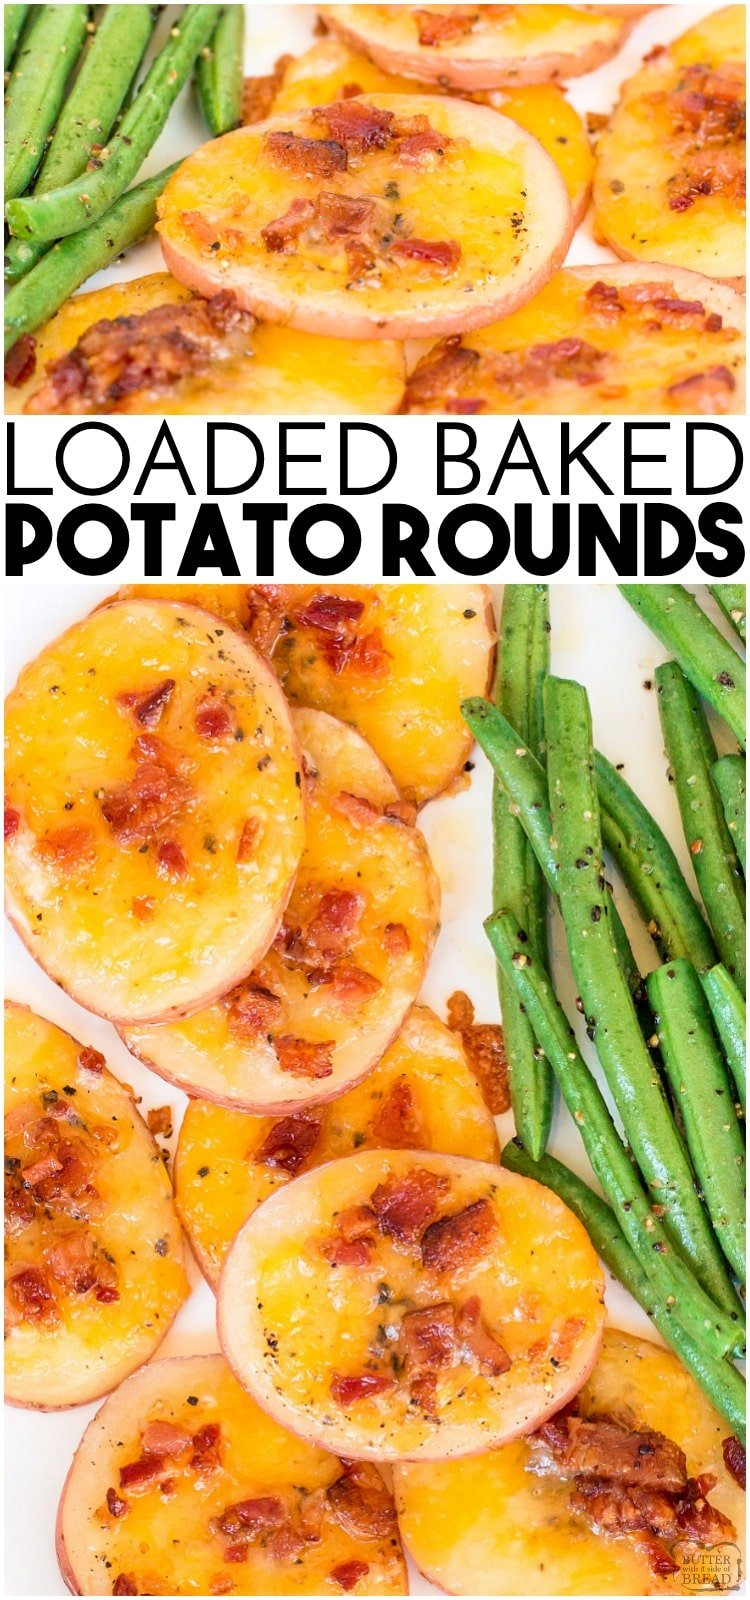 Loaded Baked Potato Roundsare quick and easy to make. Baked potatoes sliced thin and topped with bacon, cheese and sour cream! Perfect appetizer or side dish.